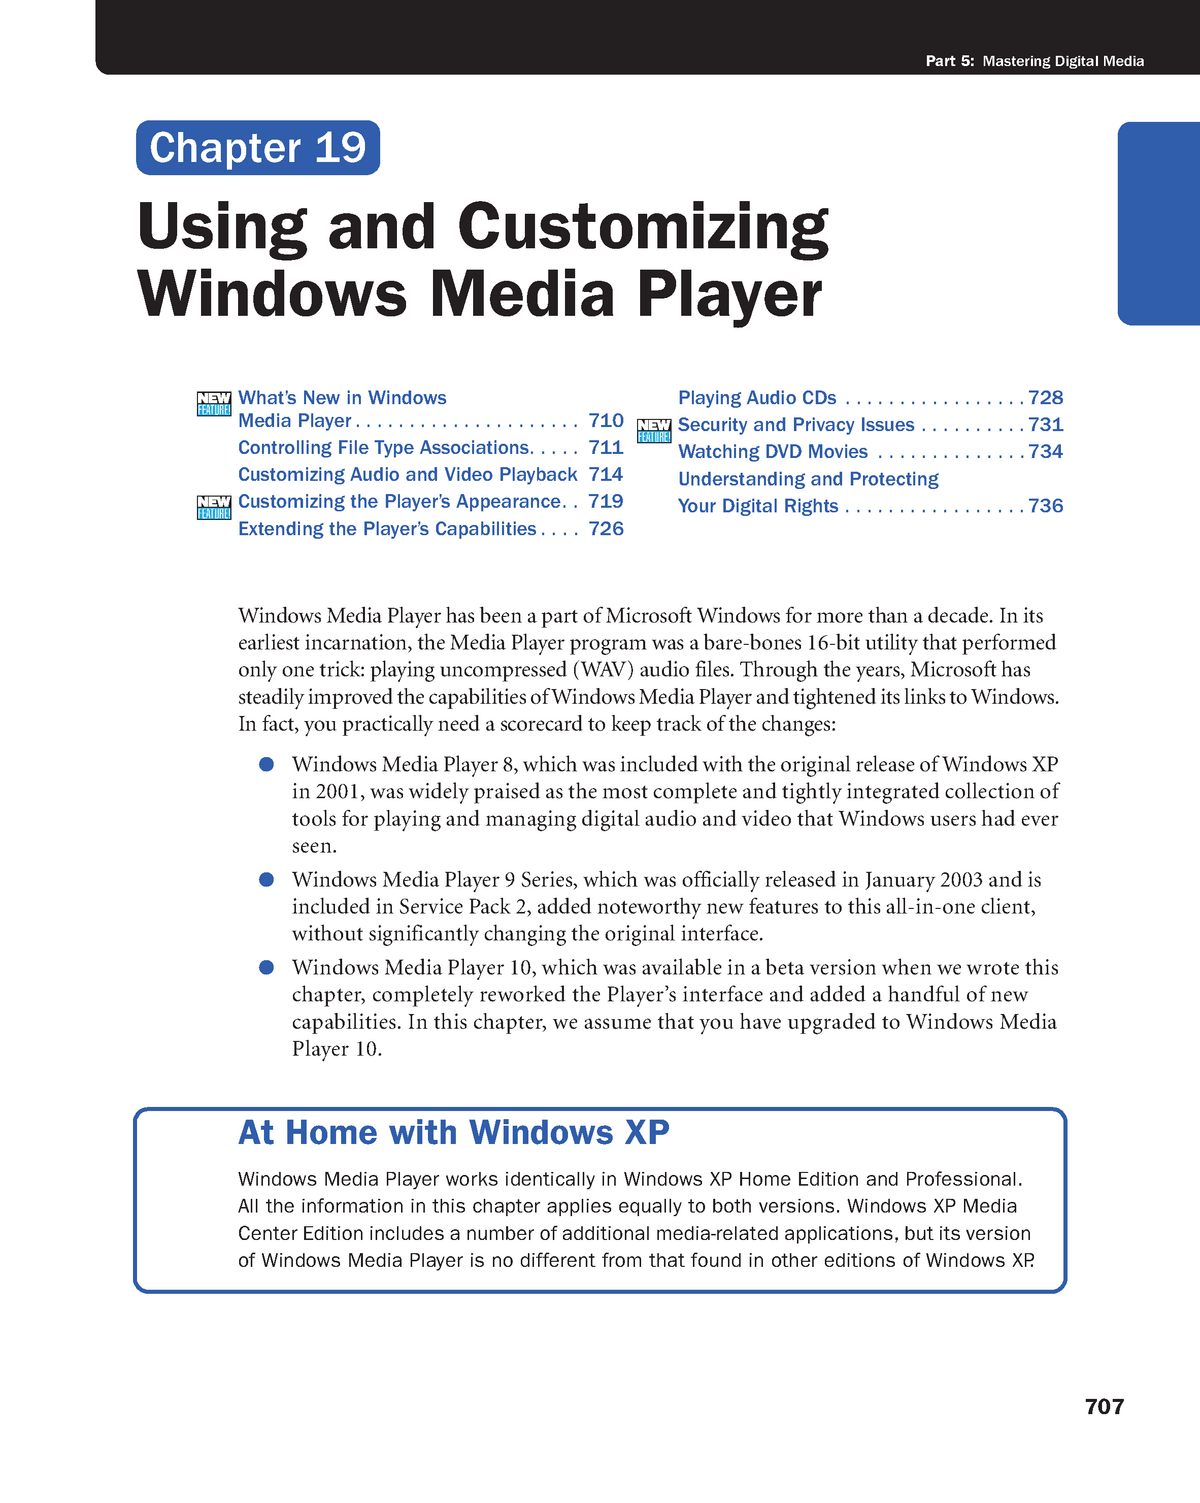 Chapter 19 - Using and Customizing Windows Media Player